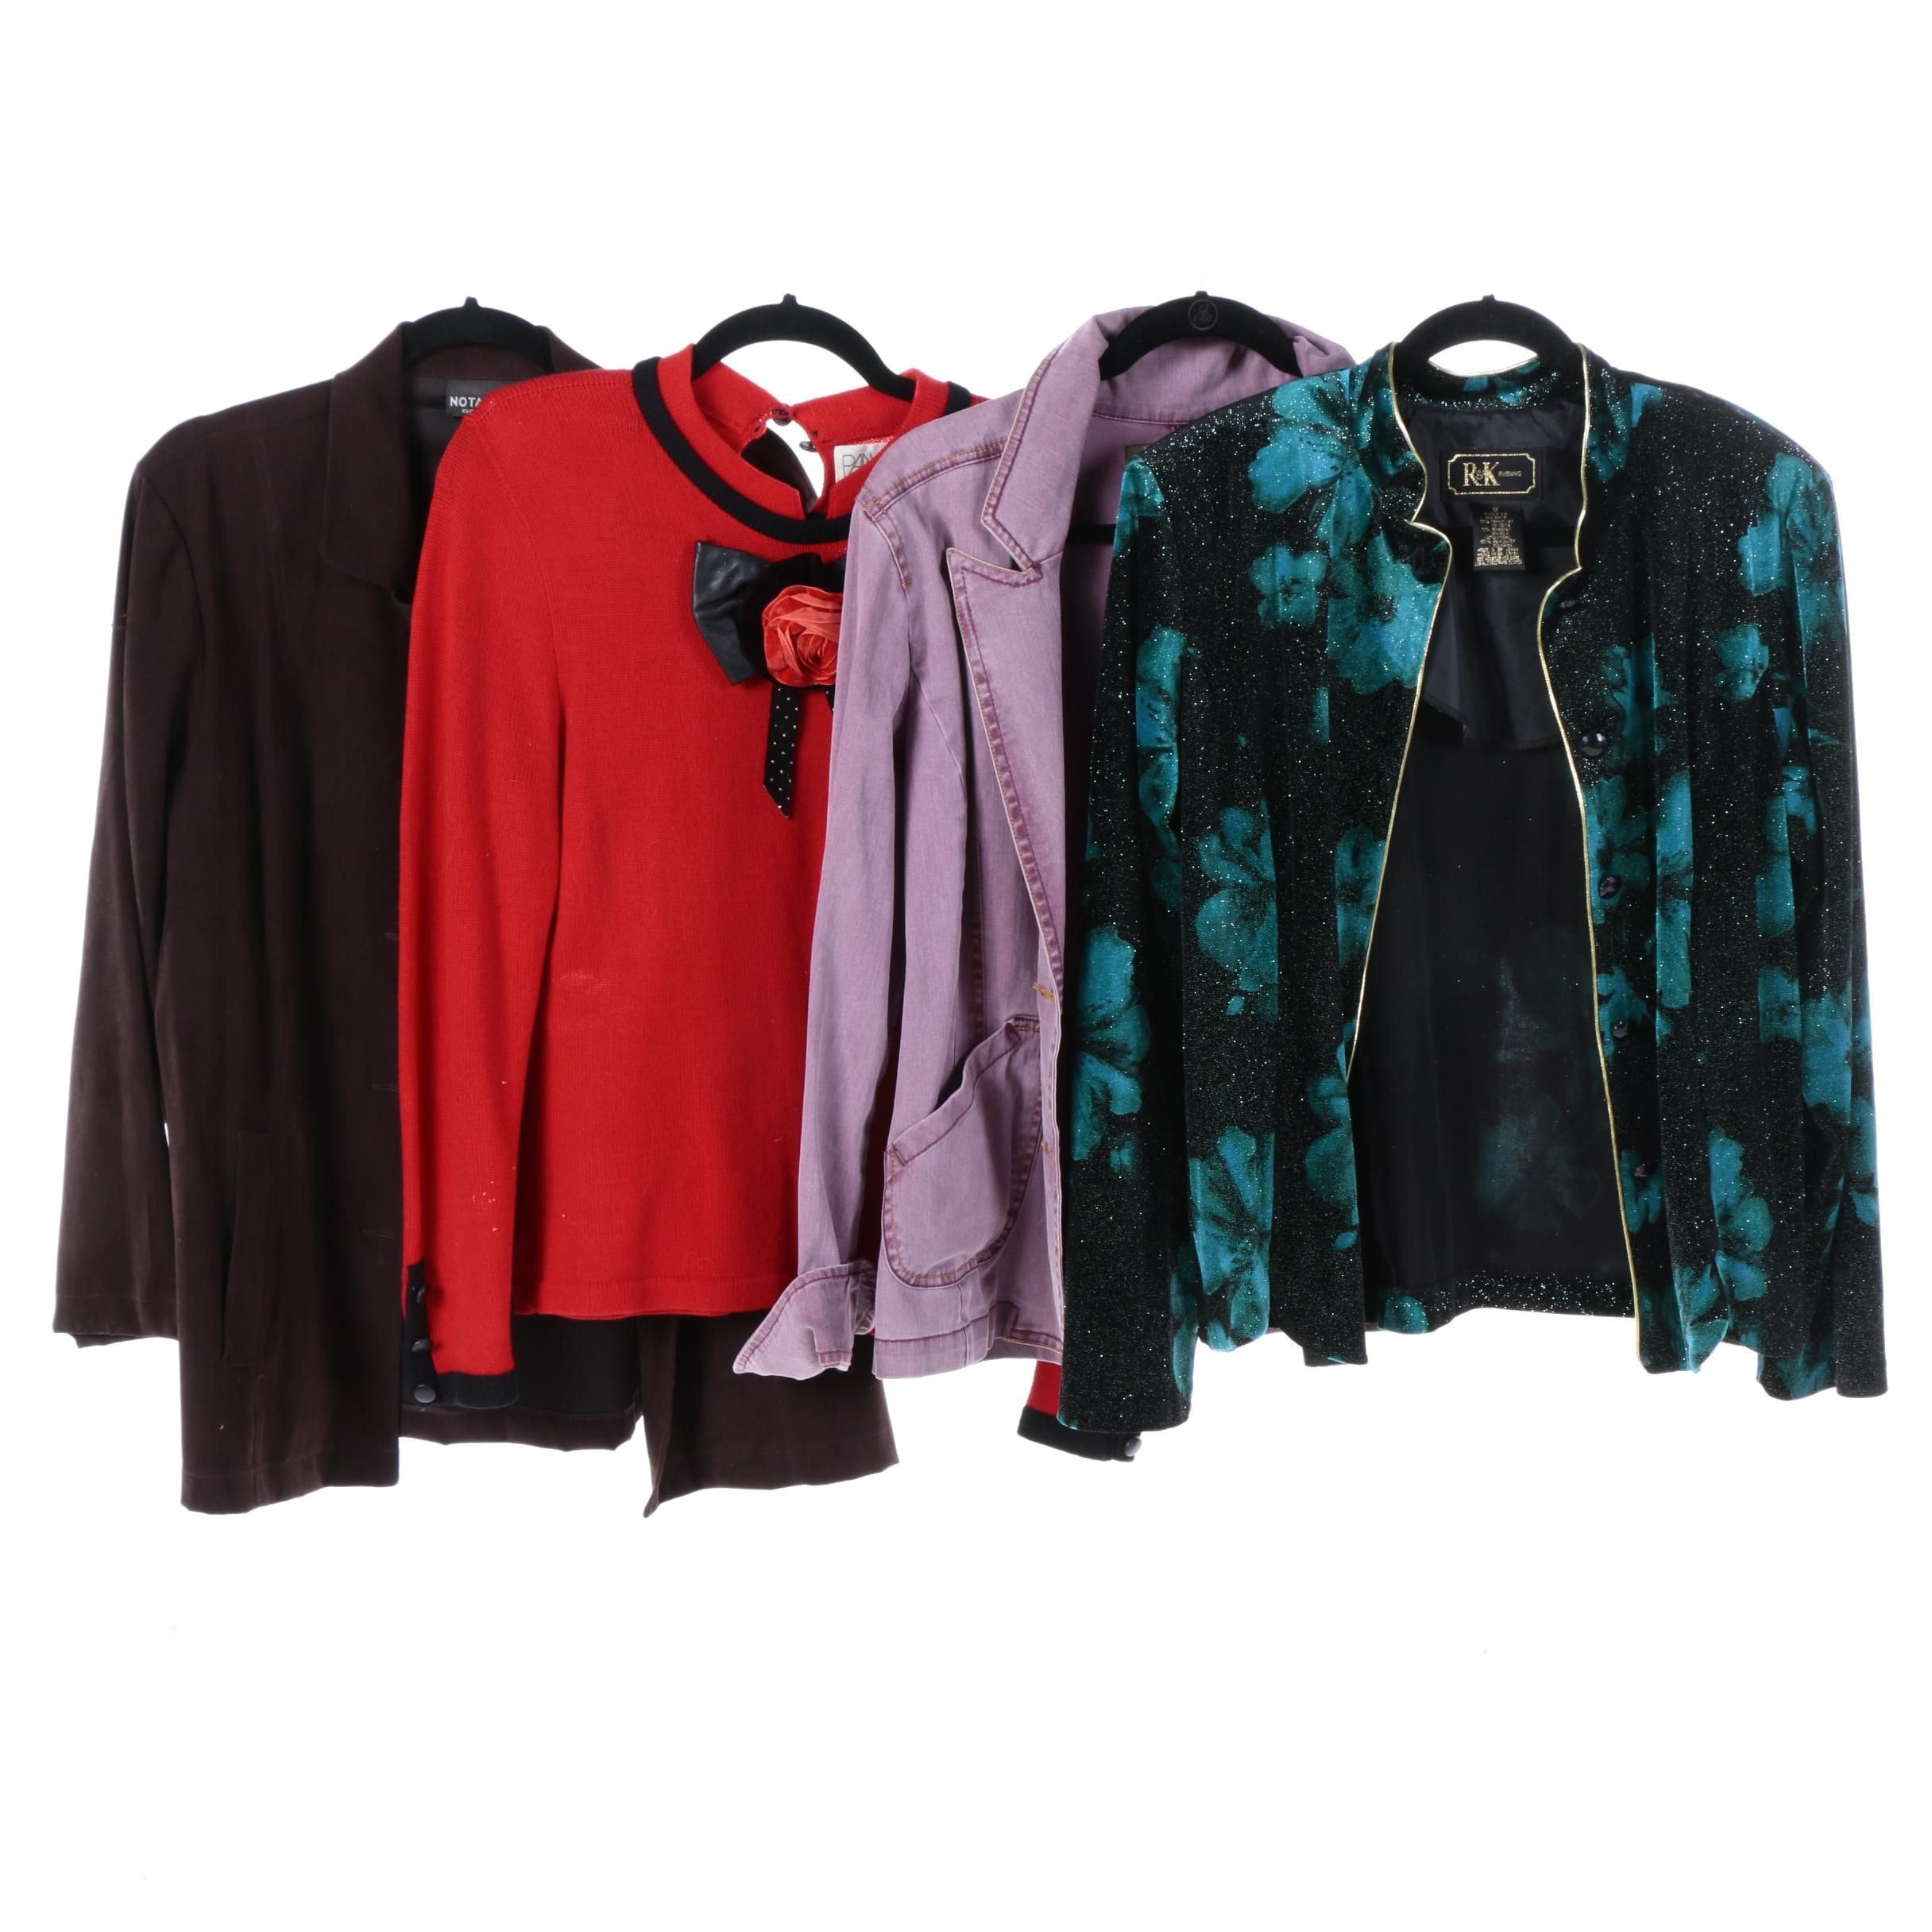 Women's Jackets Including R&K Evening